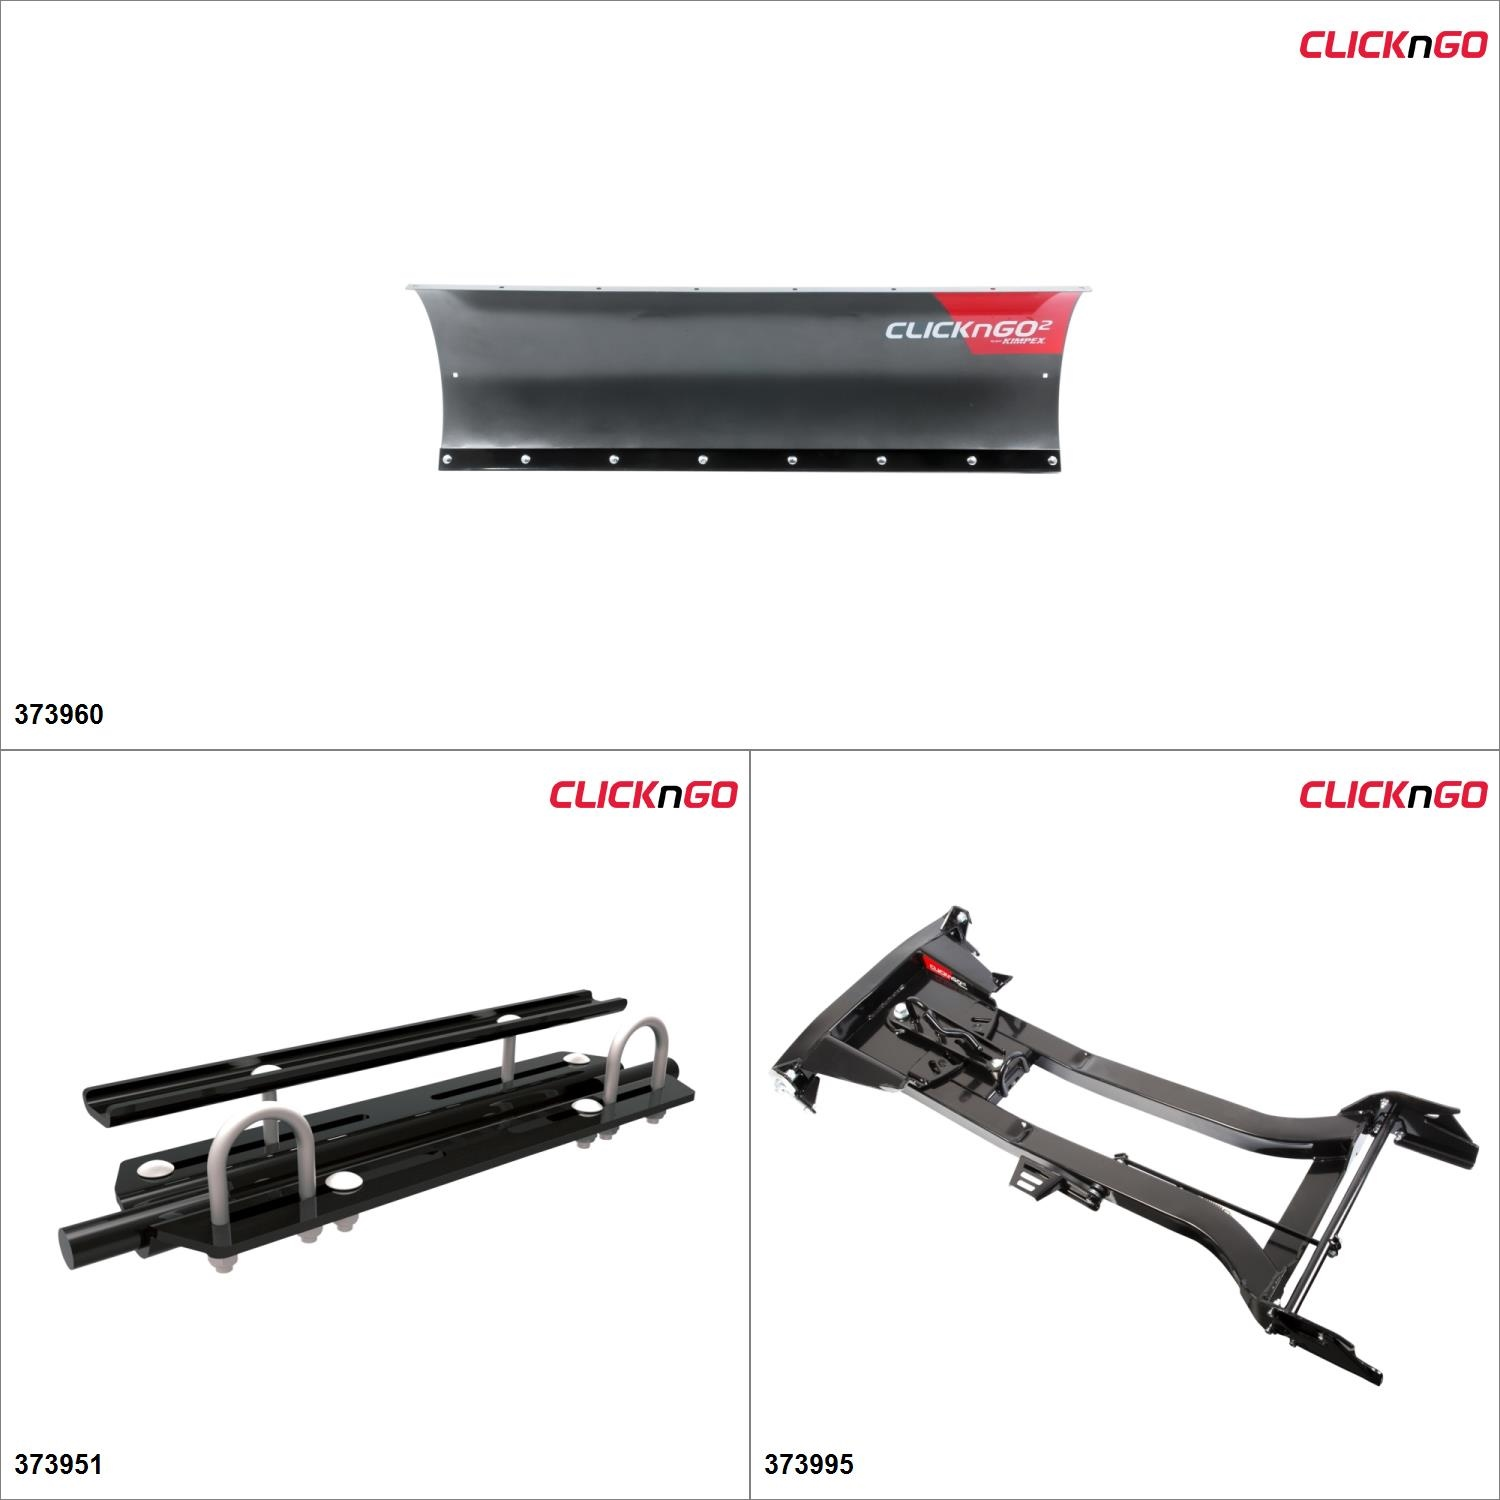 ClickNGo GEN 1.5 ATV Plow kit 50\ by ATV Snowplows